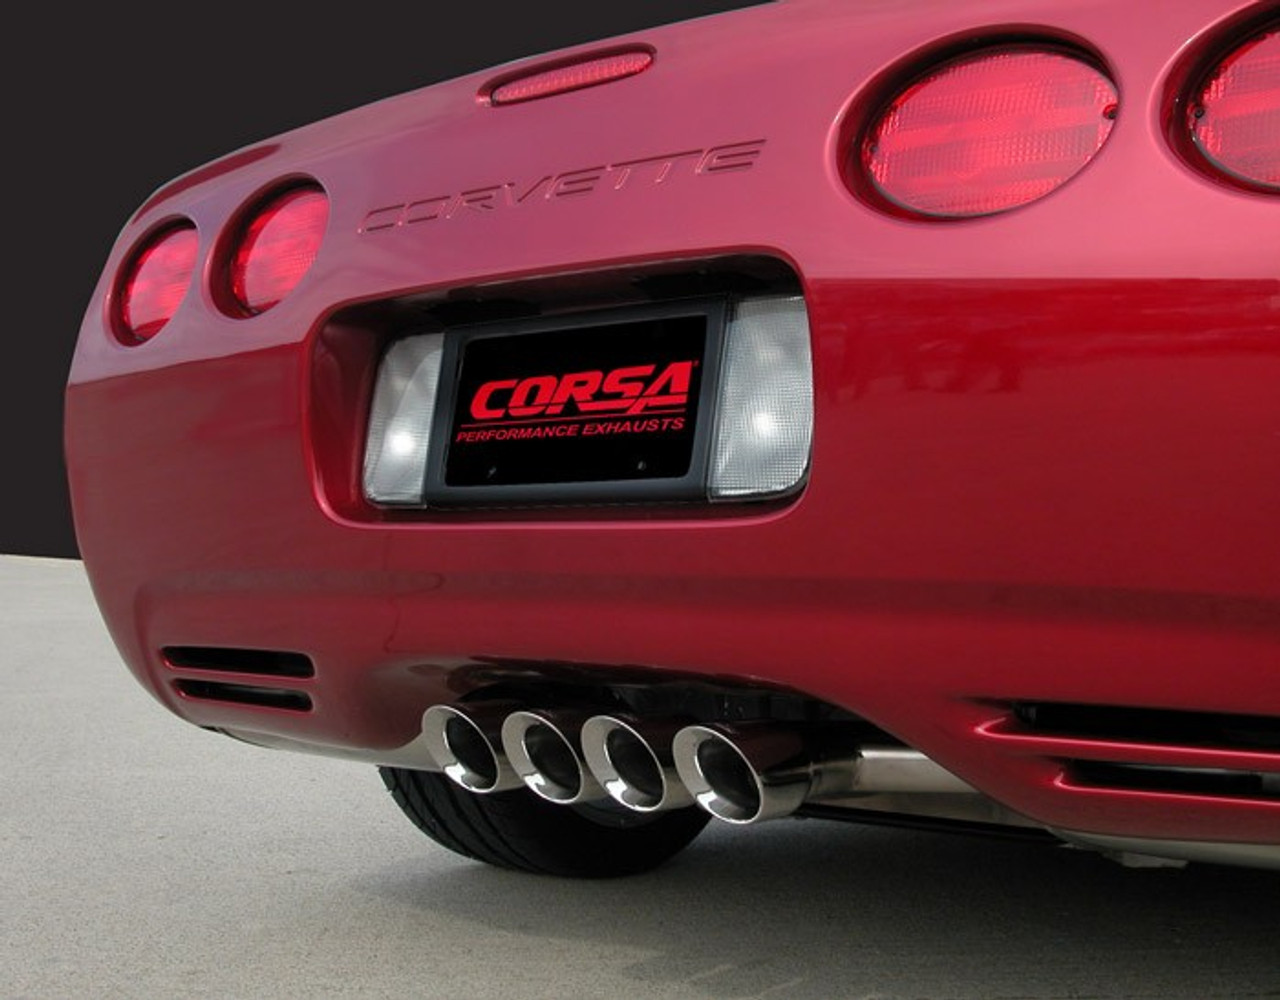 c5 corsa xtreme cat back exhaust system